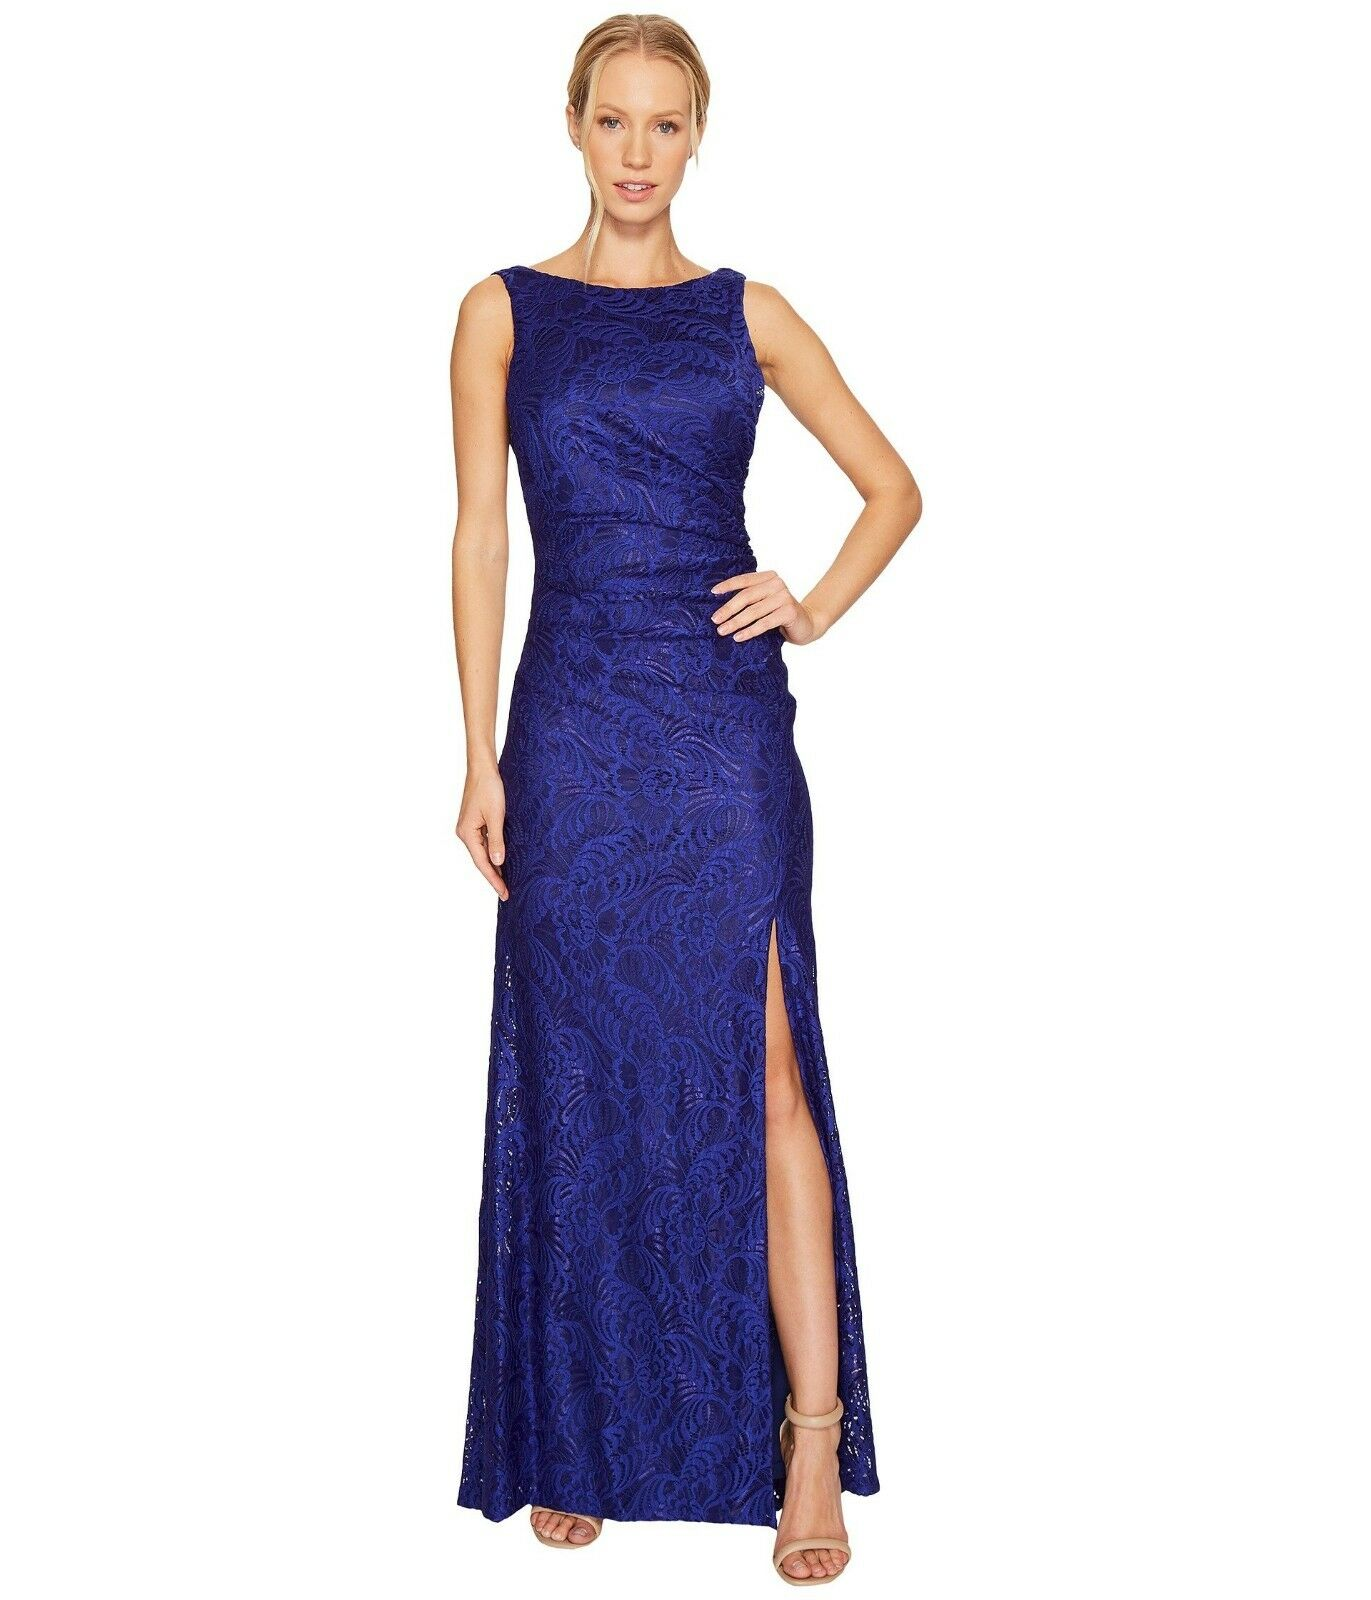 NWT Adrianna Papell Cowl Back in Neptune Blau Ruched Stretch Lace Gown Dress 4